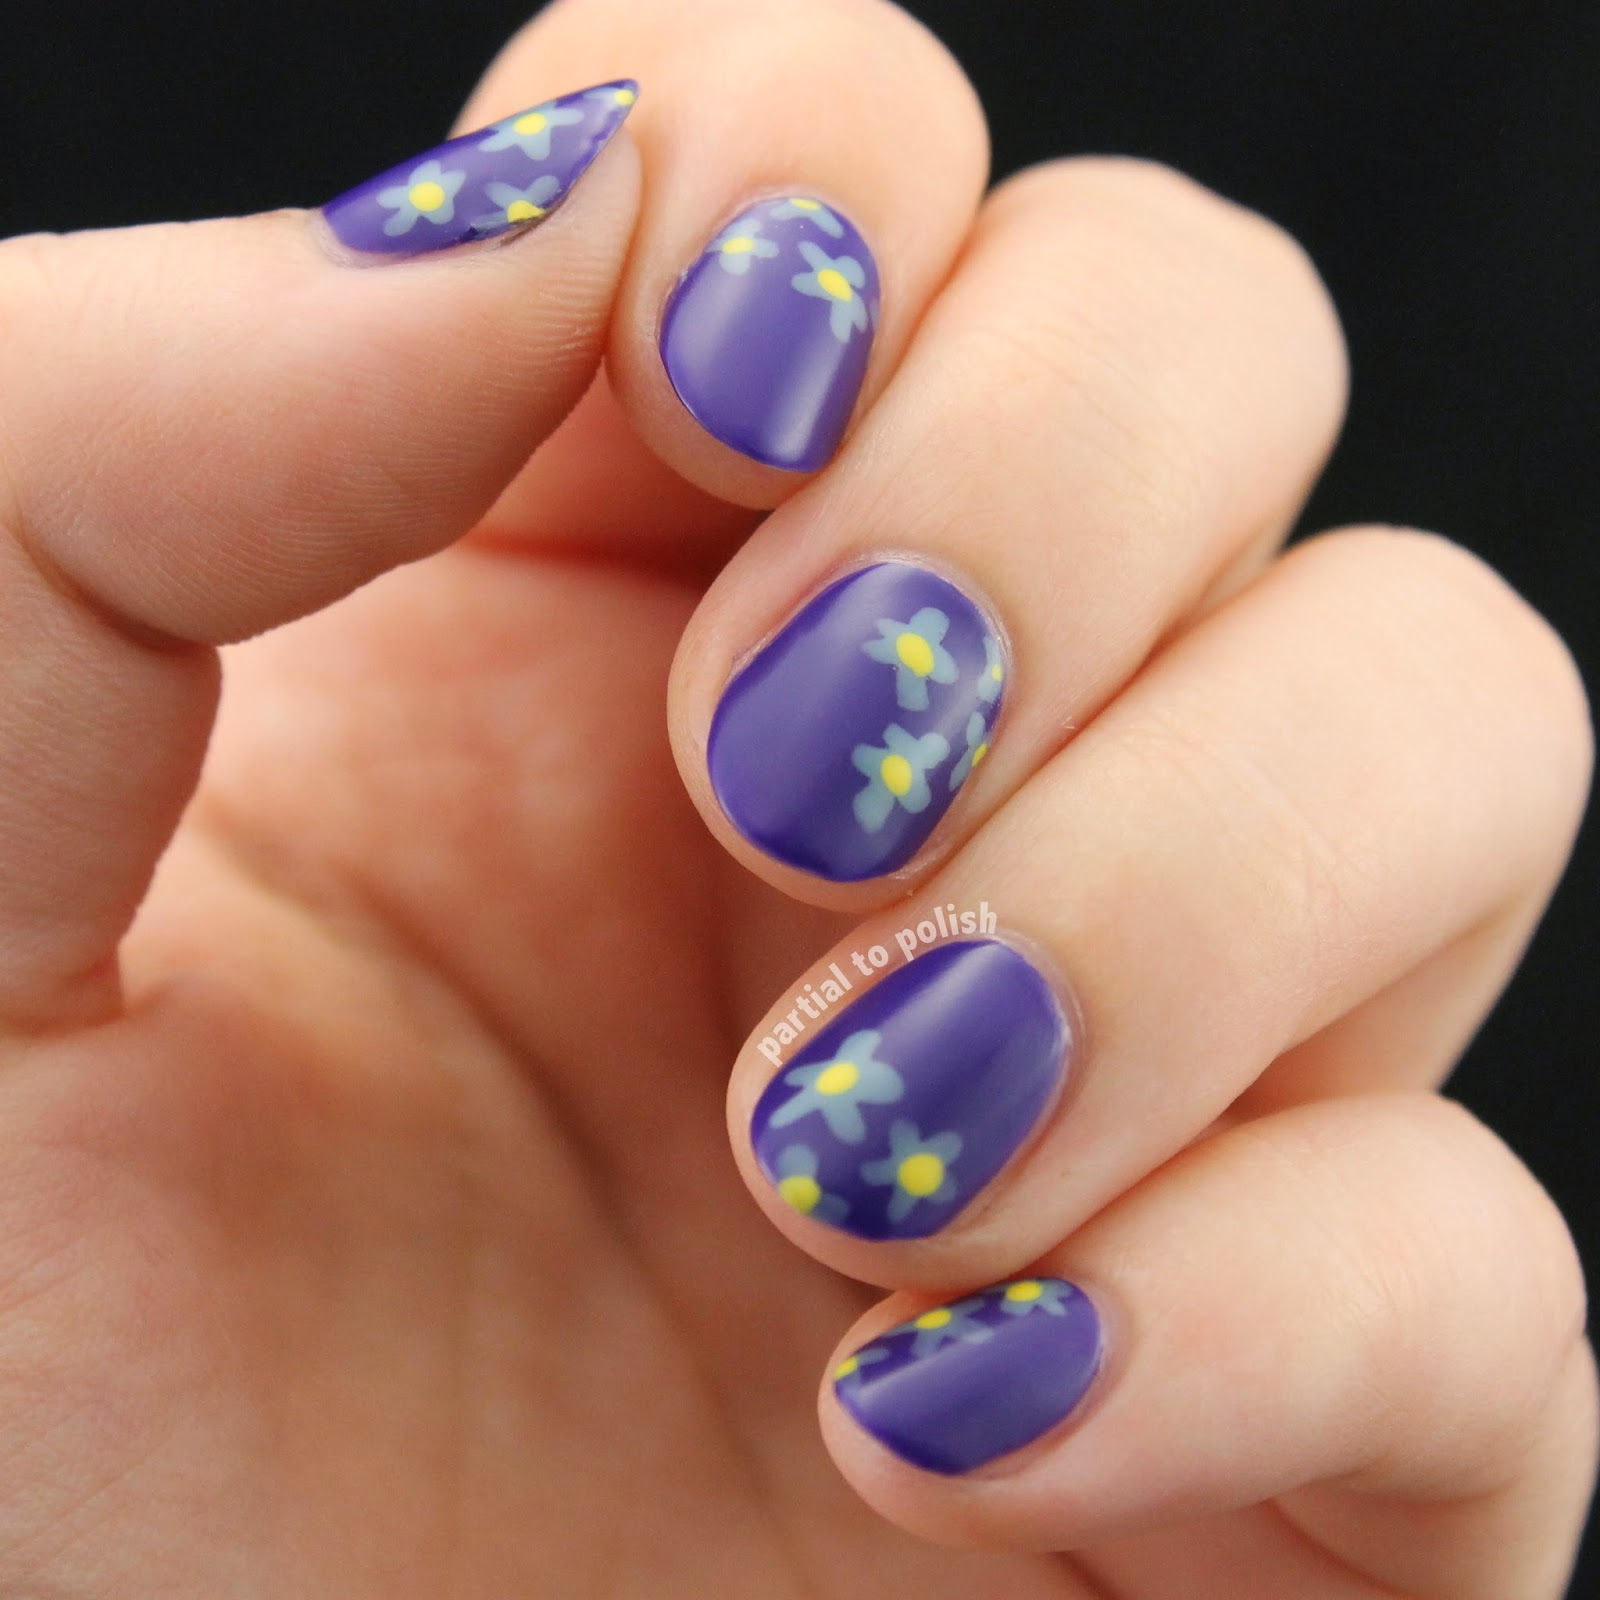 Purple Floral Nail Art Featuring Pretty & Polished Wax On Top Coat!